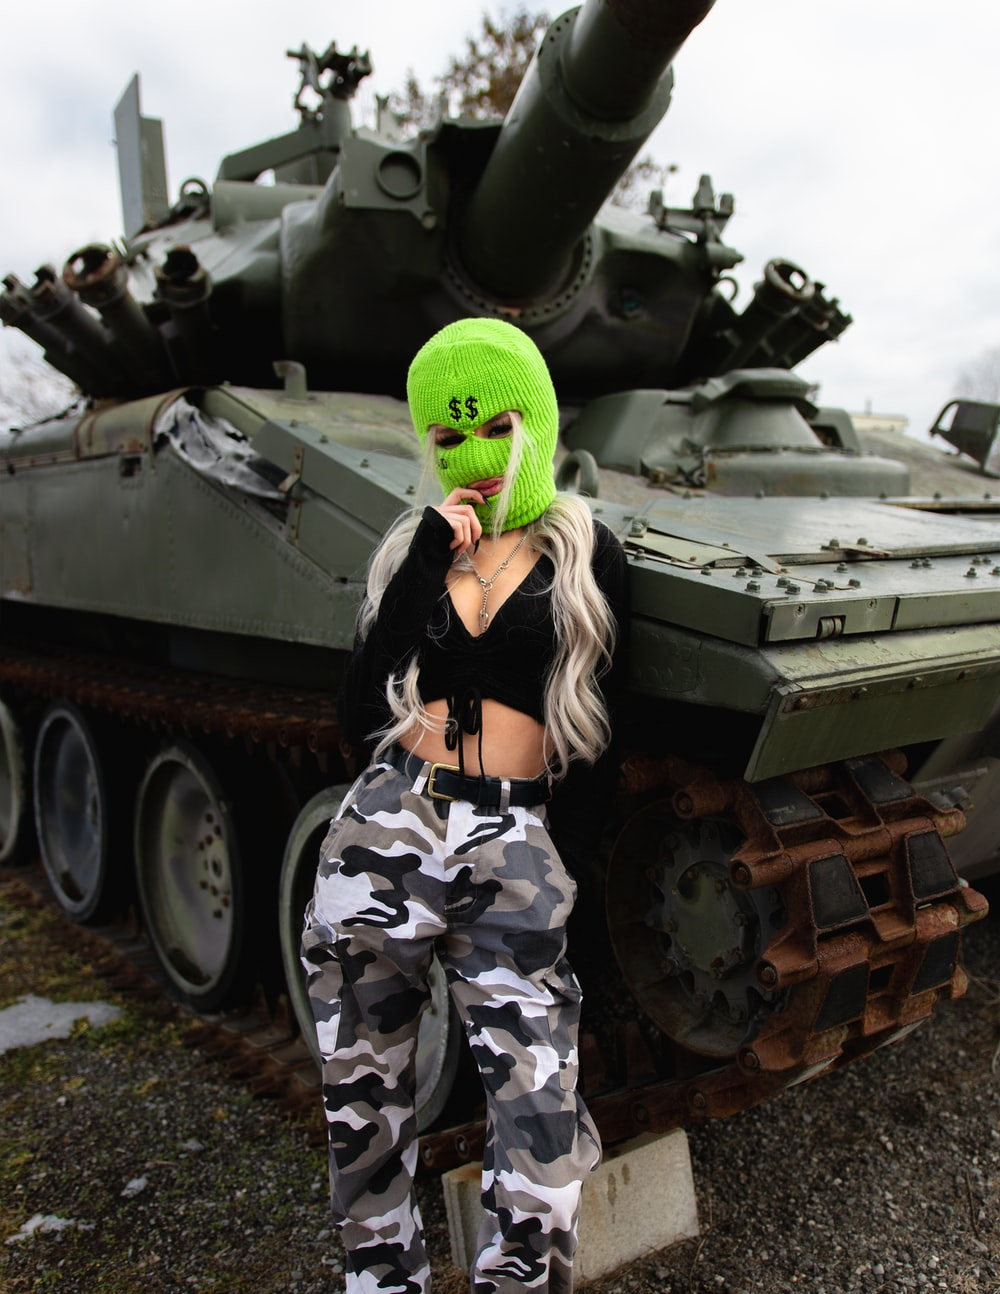 woman in green and black camouflage uniform standing beside green battle tank